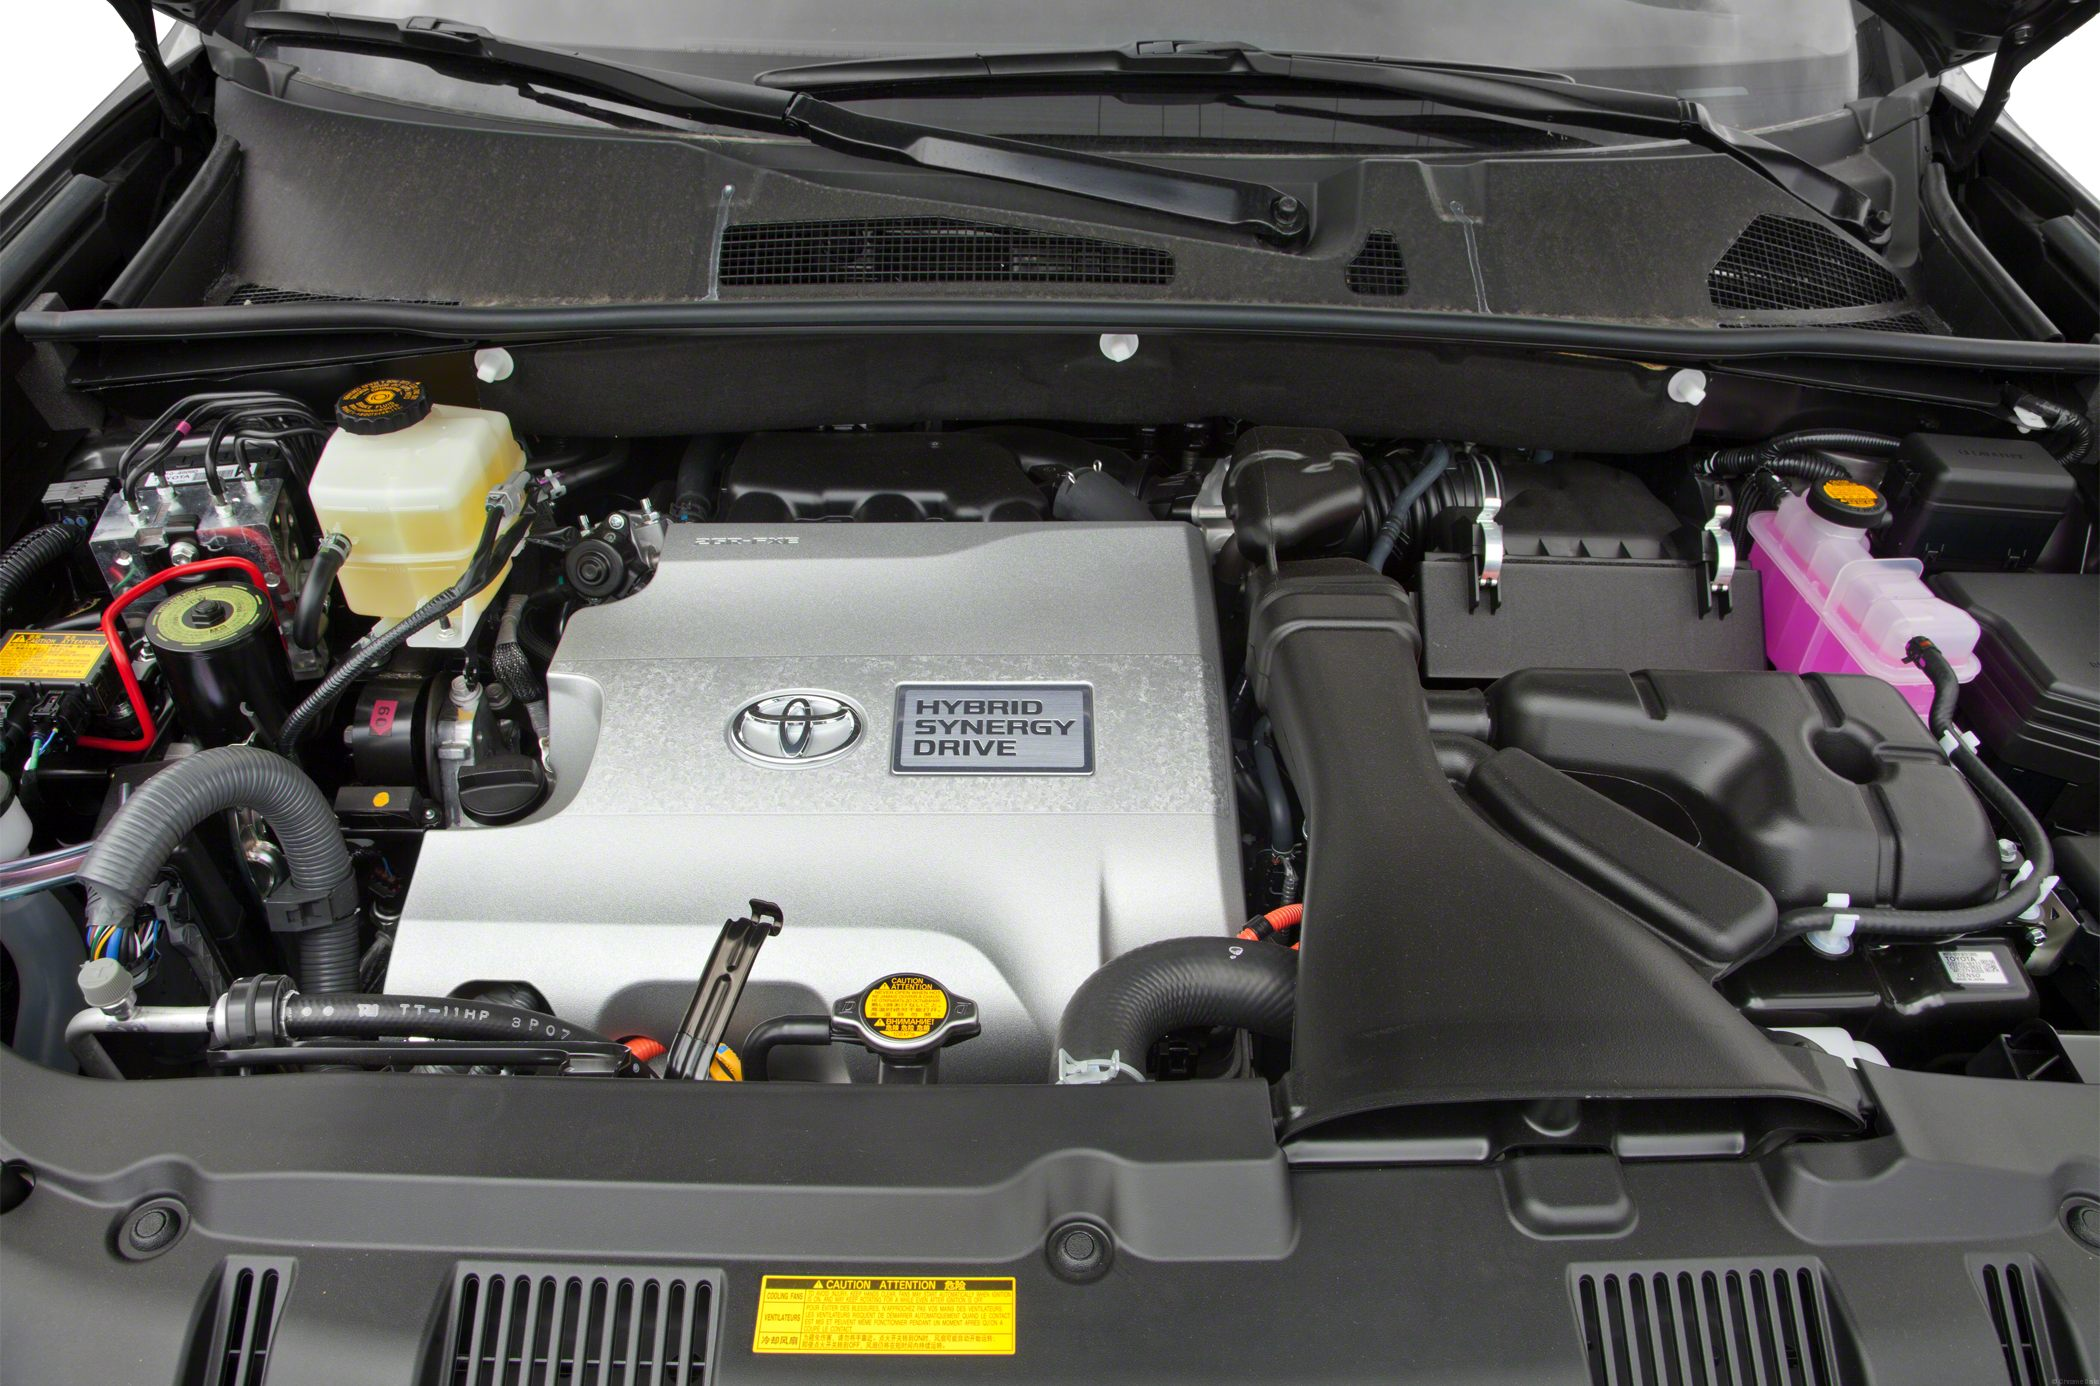 Toyota Camry 2010 Cabin Air Filter Location as well Toyota Avalon Bank 1 Sensor Location besides Power Steering Hose Replacement Cost additionally Saturn L300 Fuel Filter in addition Mercury Grand Engine Diagram. on toyota highlander air filter location